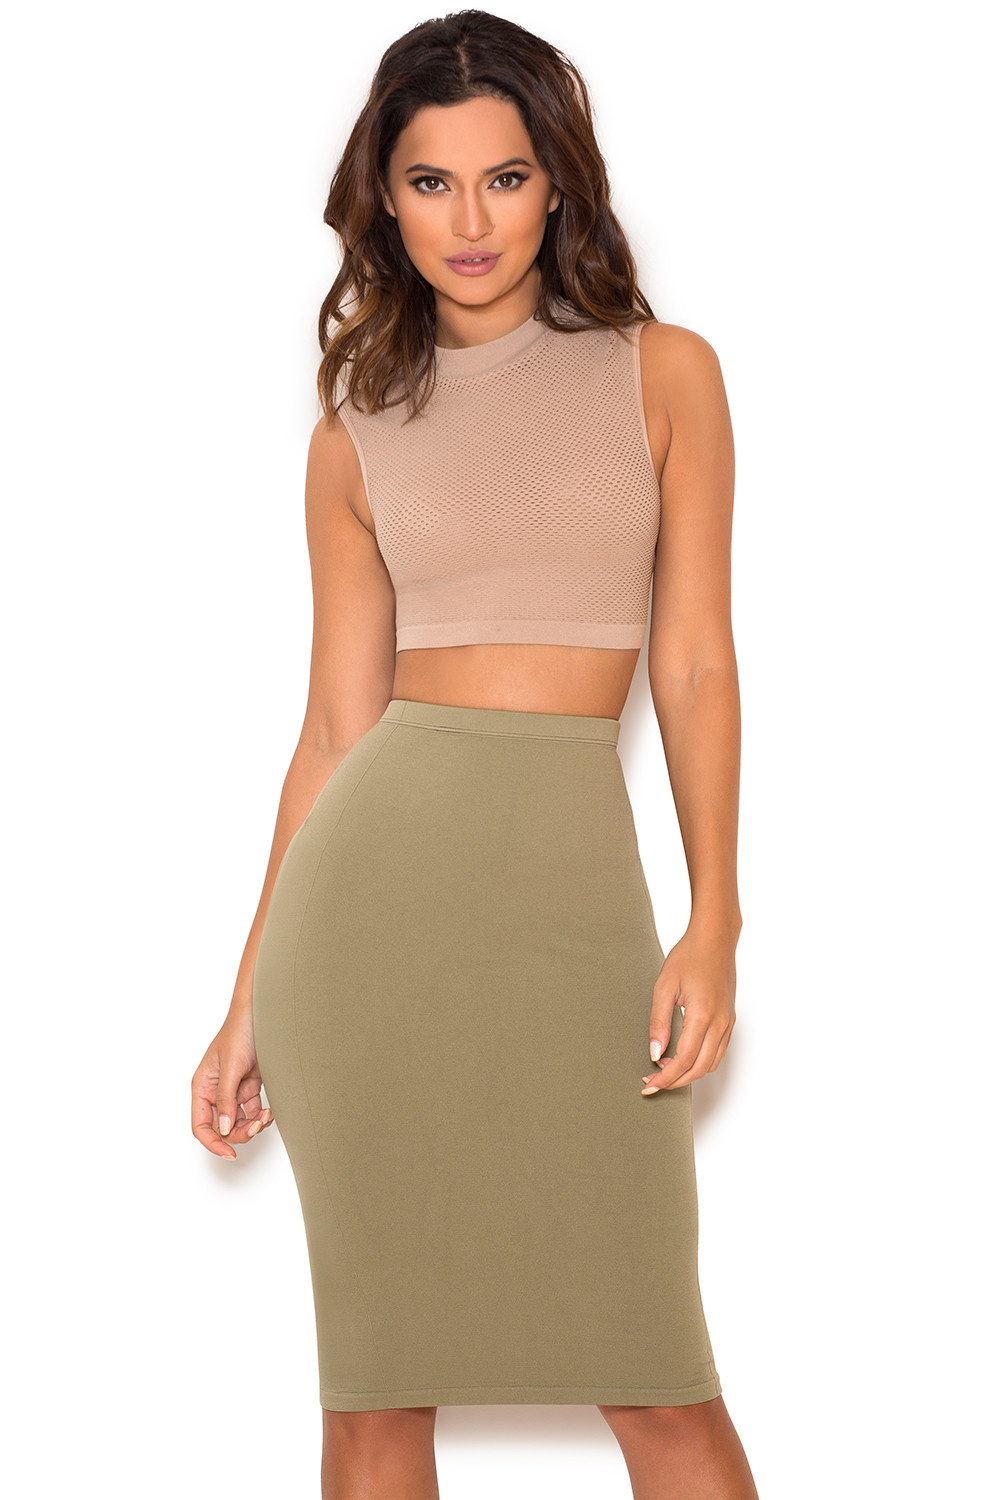 Clothing : Skirts : 'Shahla' Khaki Seamless Knit Pencil Skirt